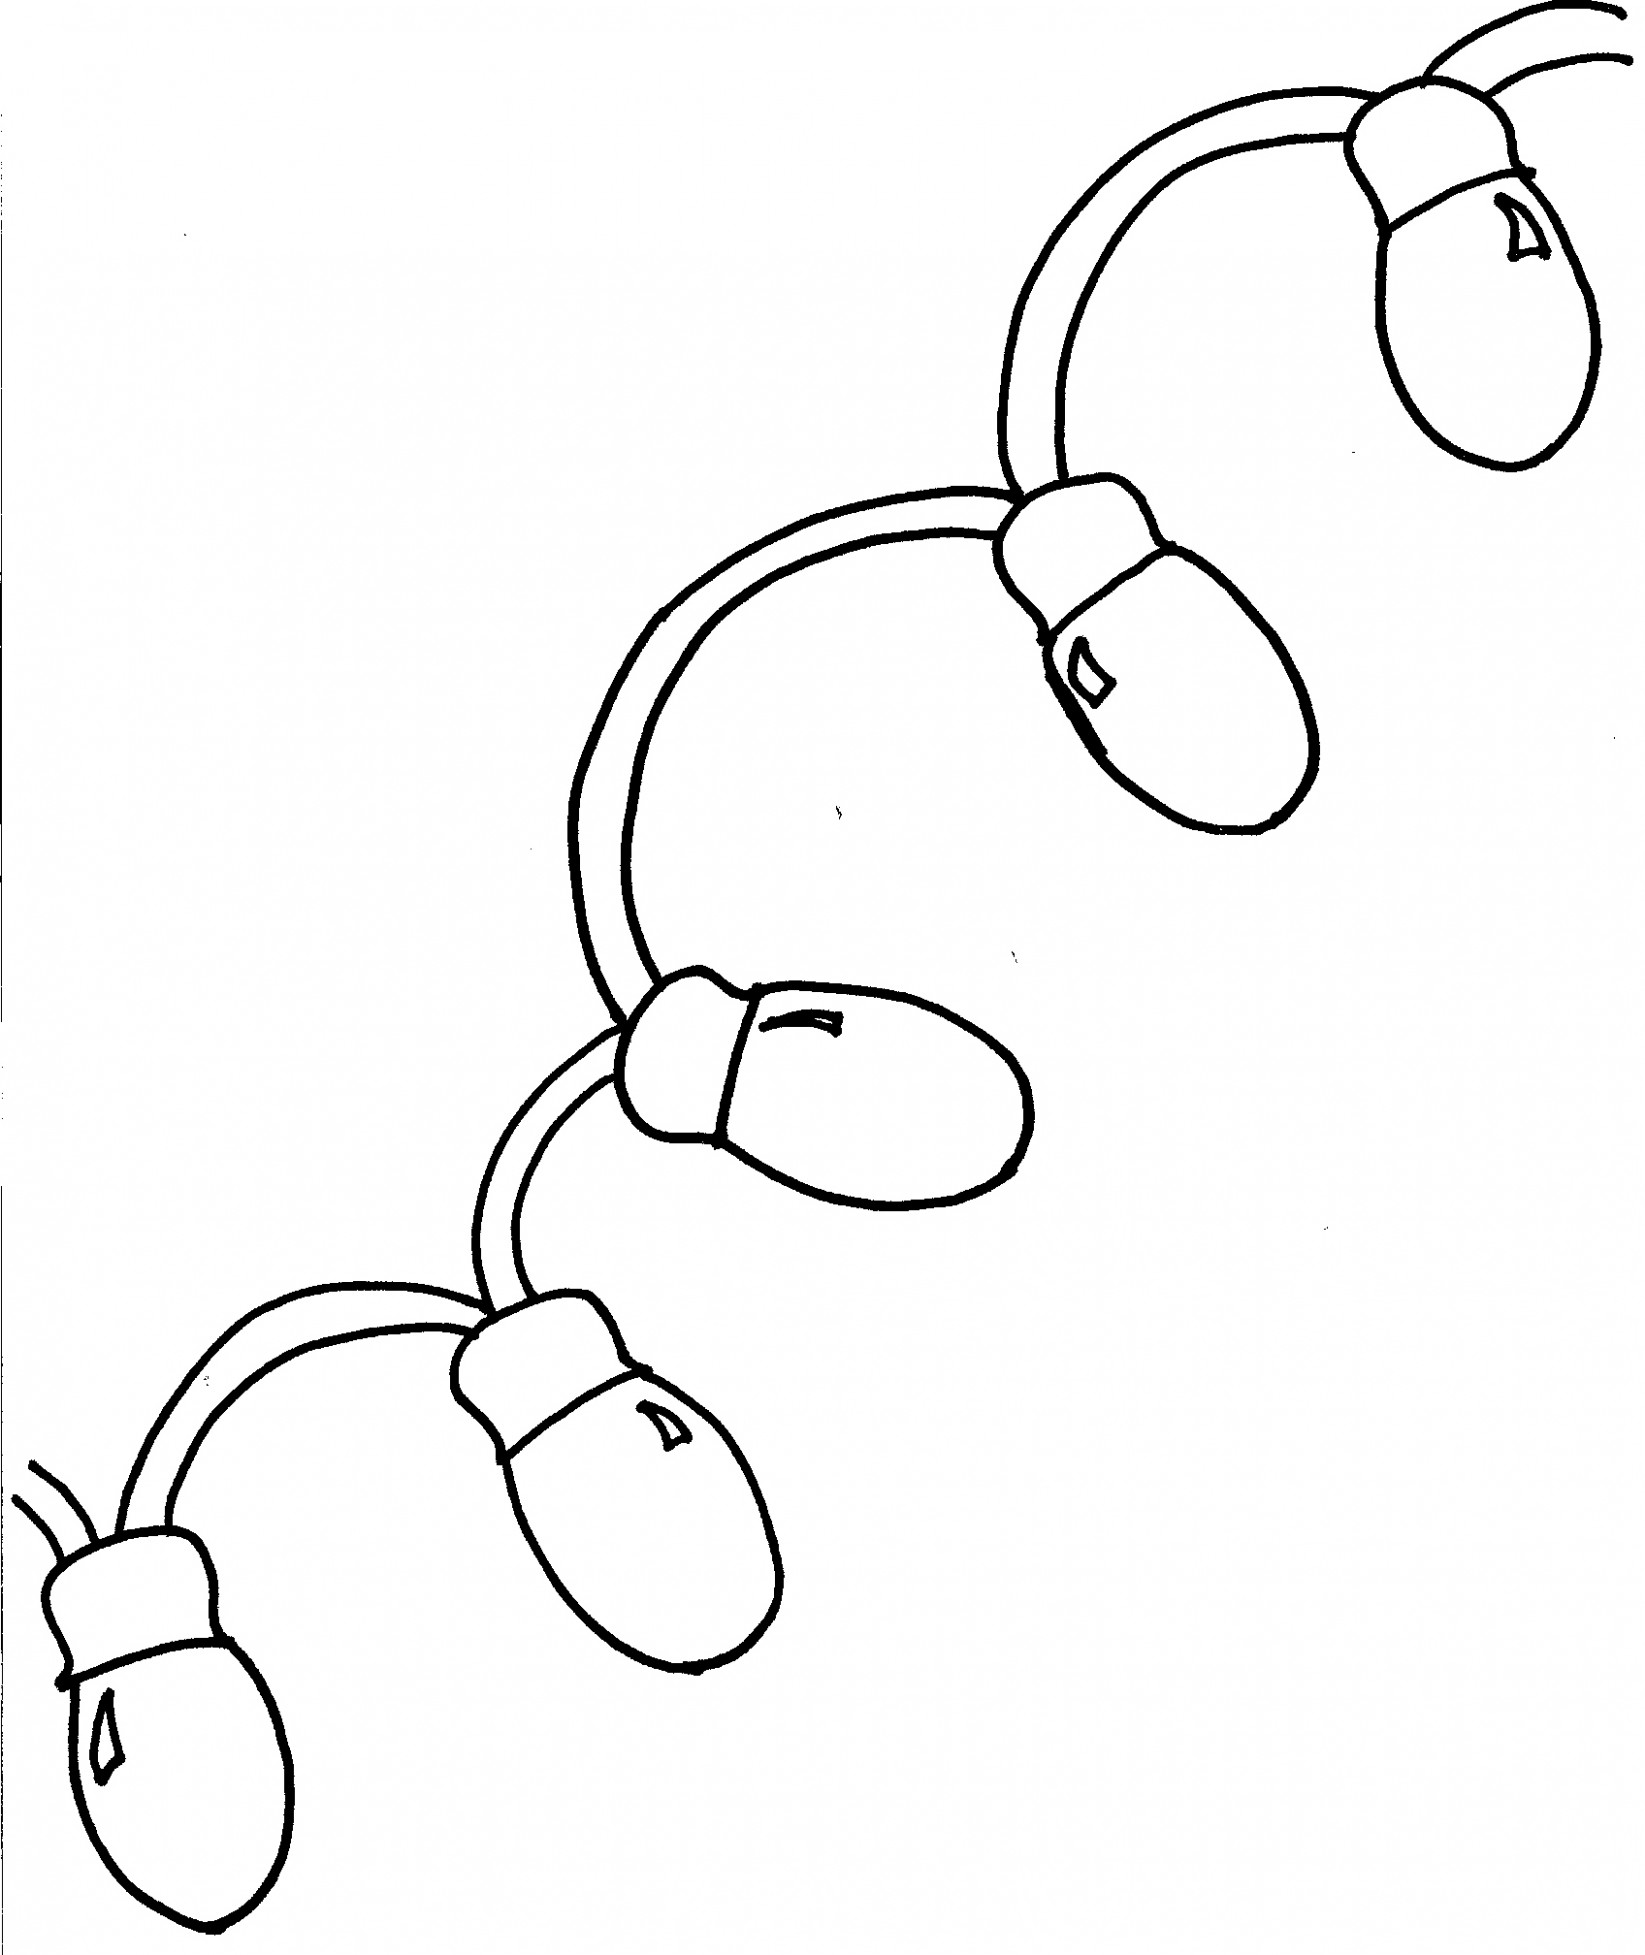 Christmas lights coloring pages - Coloring pages for kids